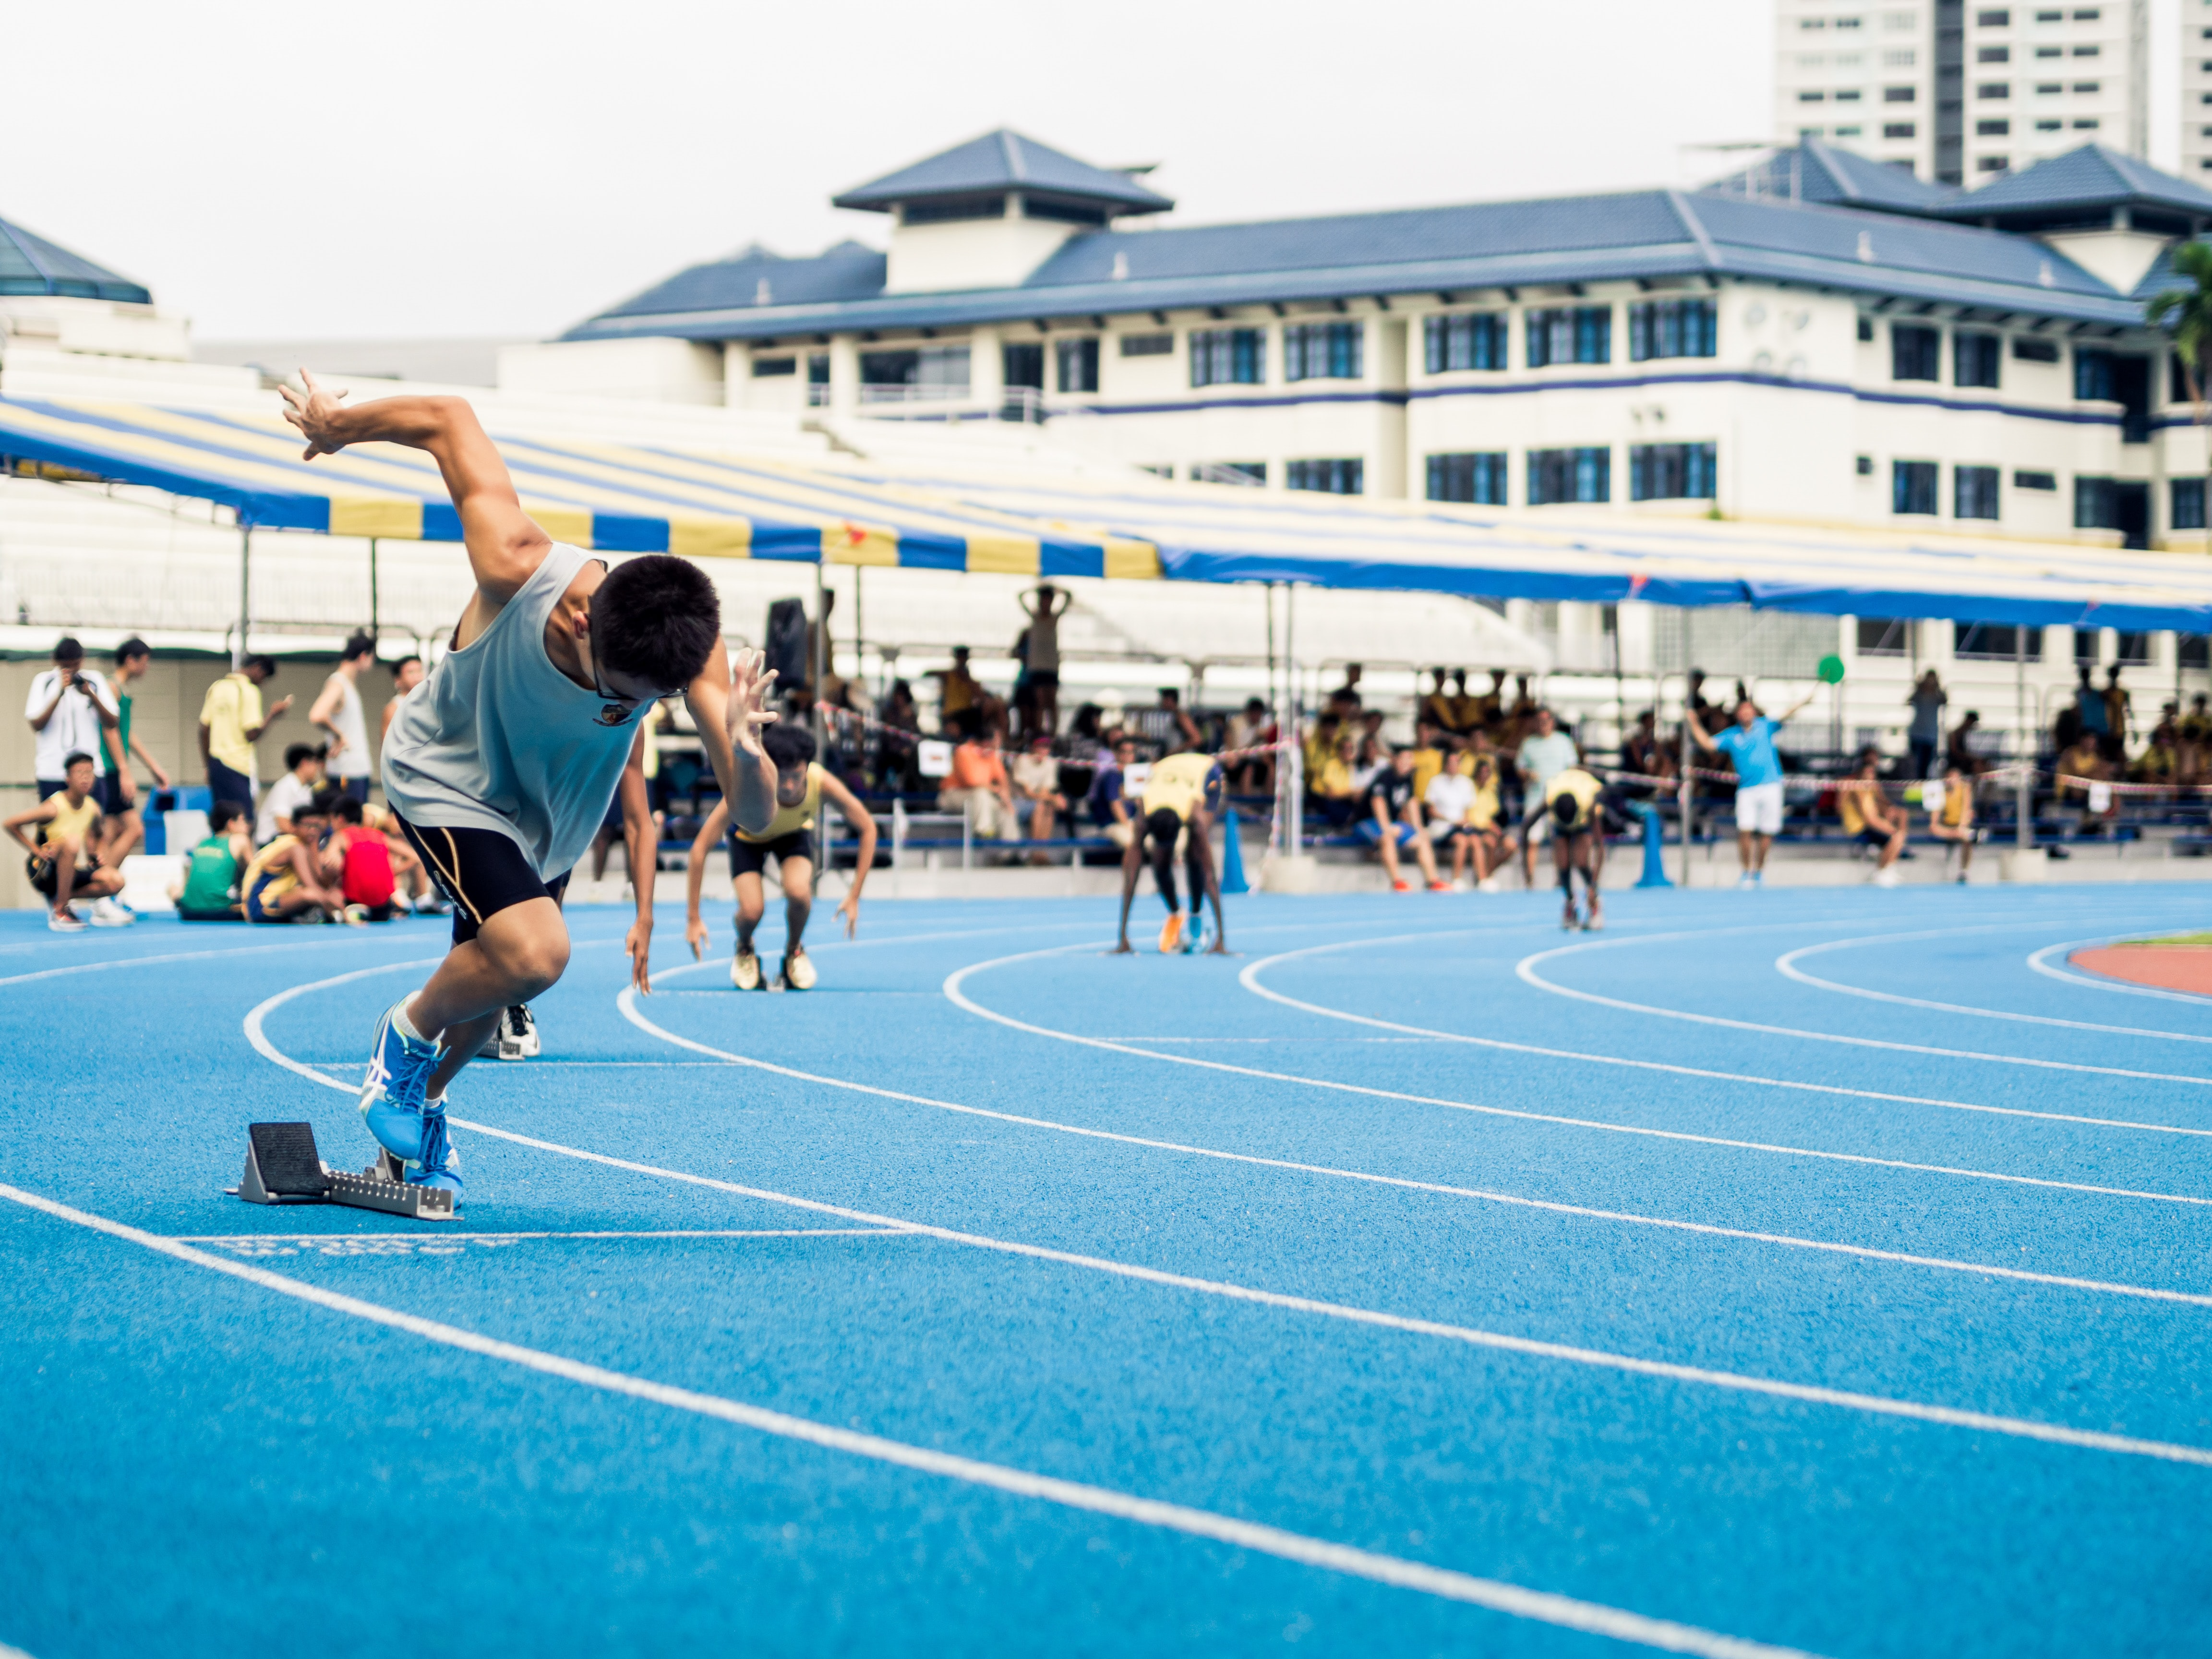 A race on the running track at Anglo-Chinese School in Singapore